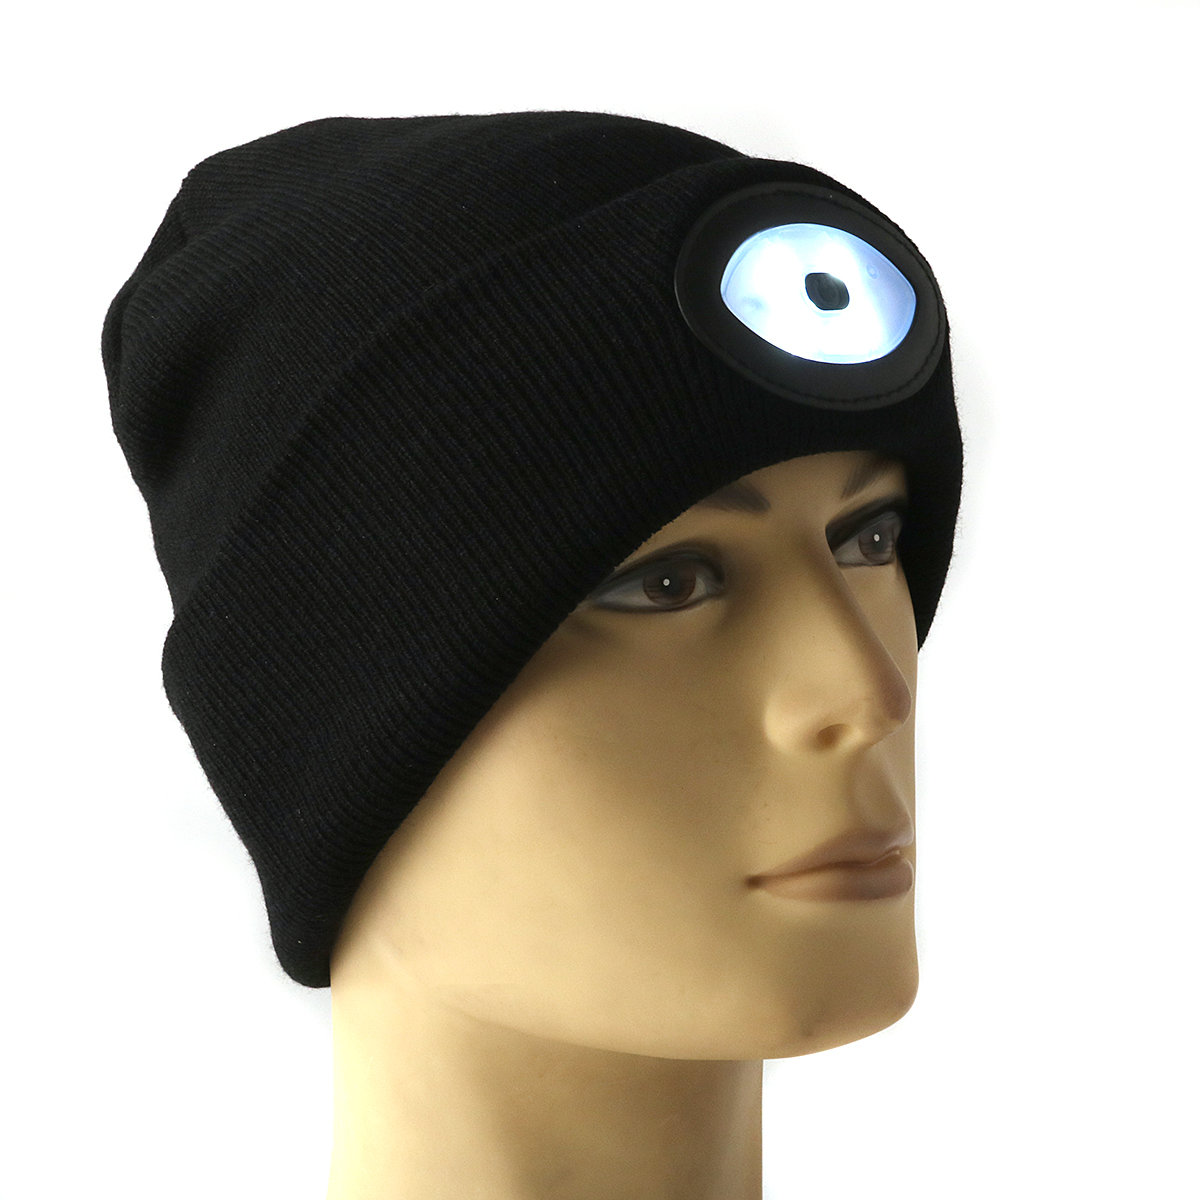 dfe0fba6b Sports Running 6 LED Beanie Knit Hat Rechargeable Cap Light Camping  Climbing Lamp